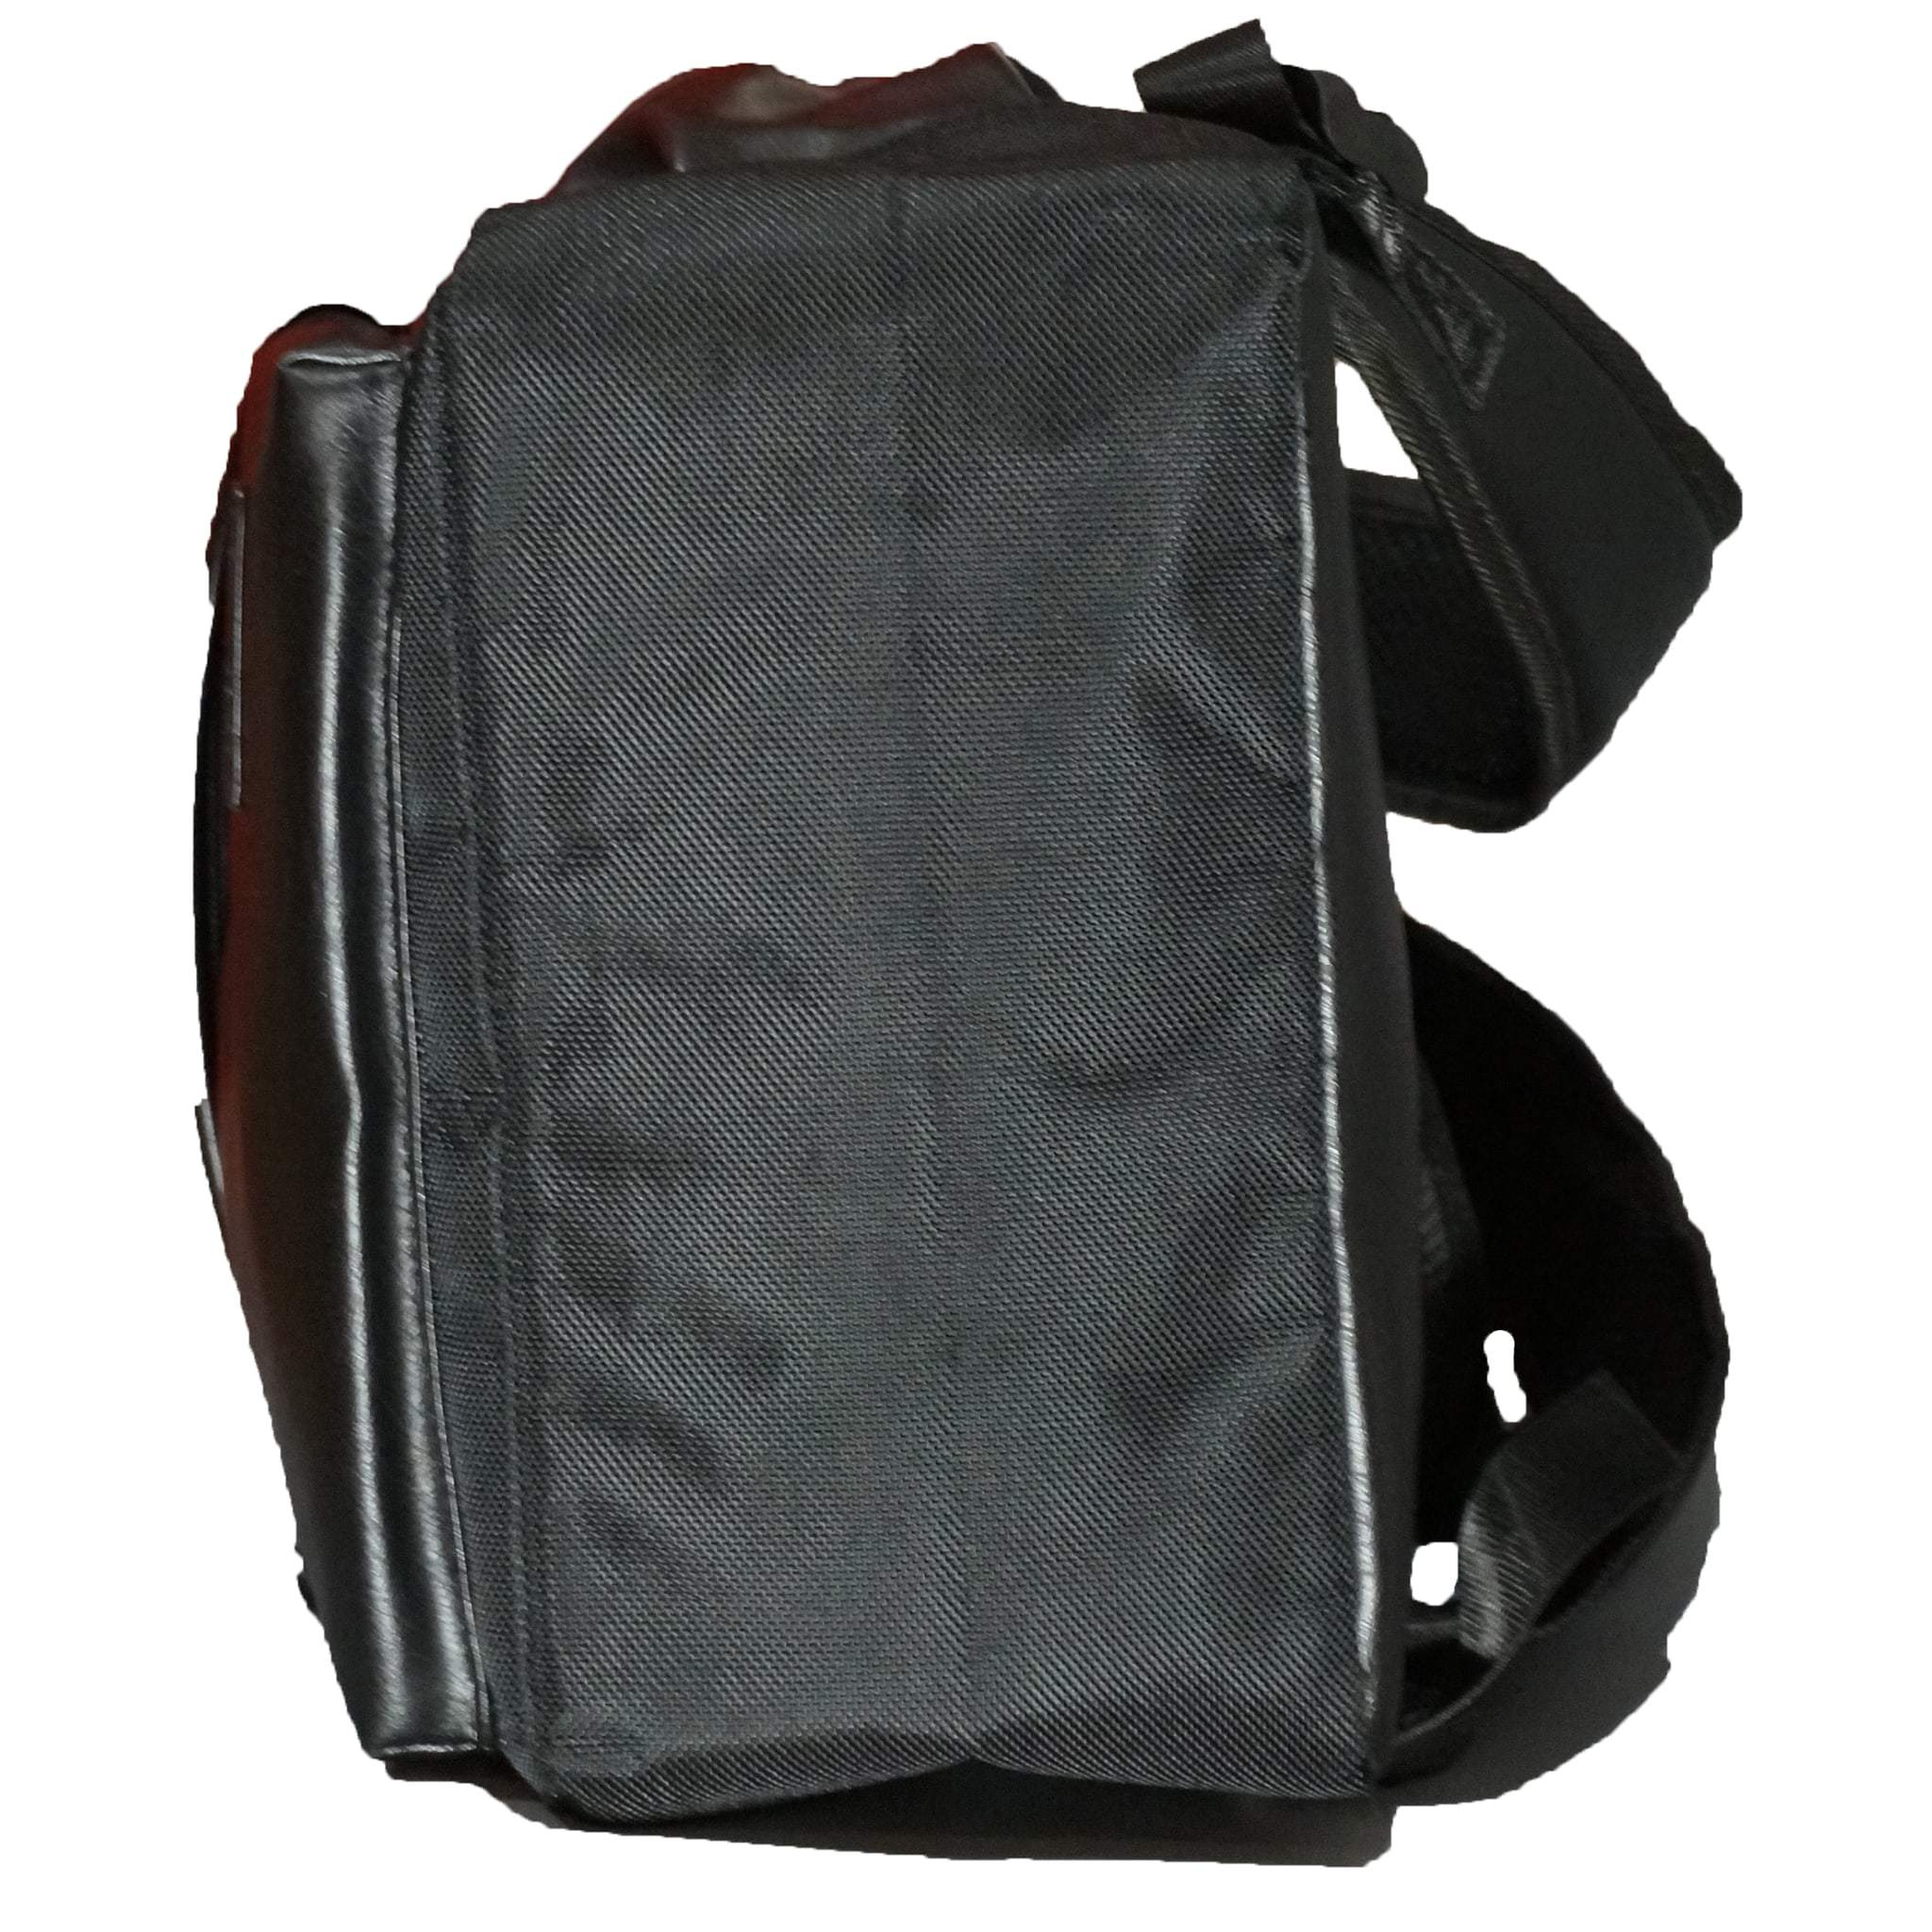 Waterproof Bag for Laptop